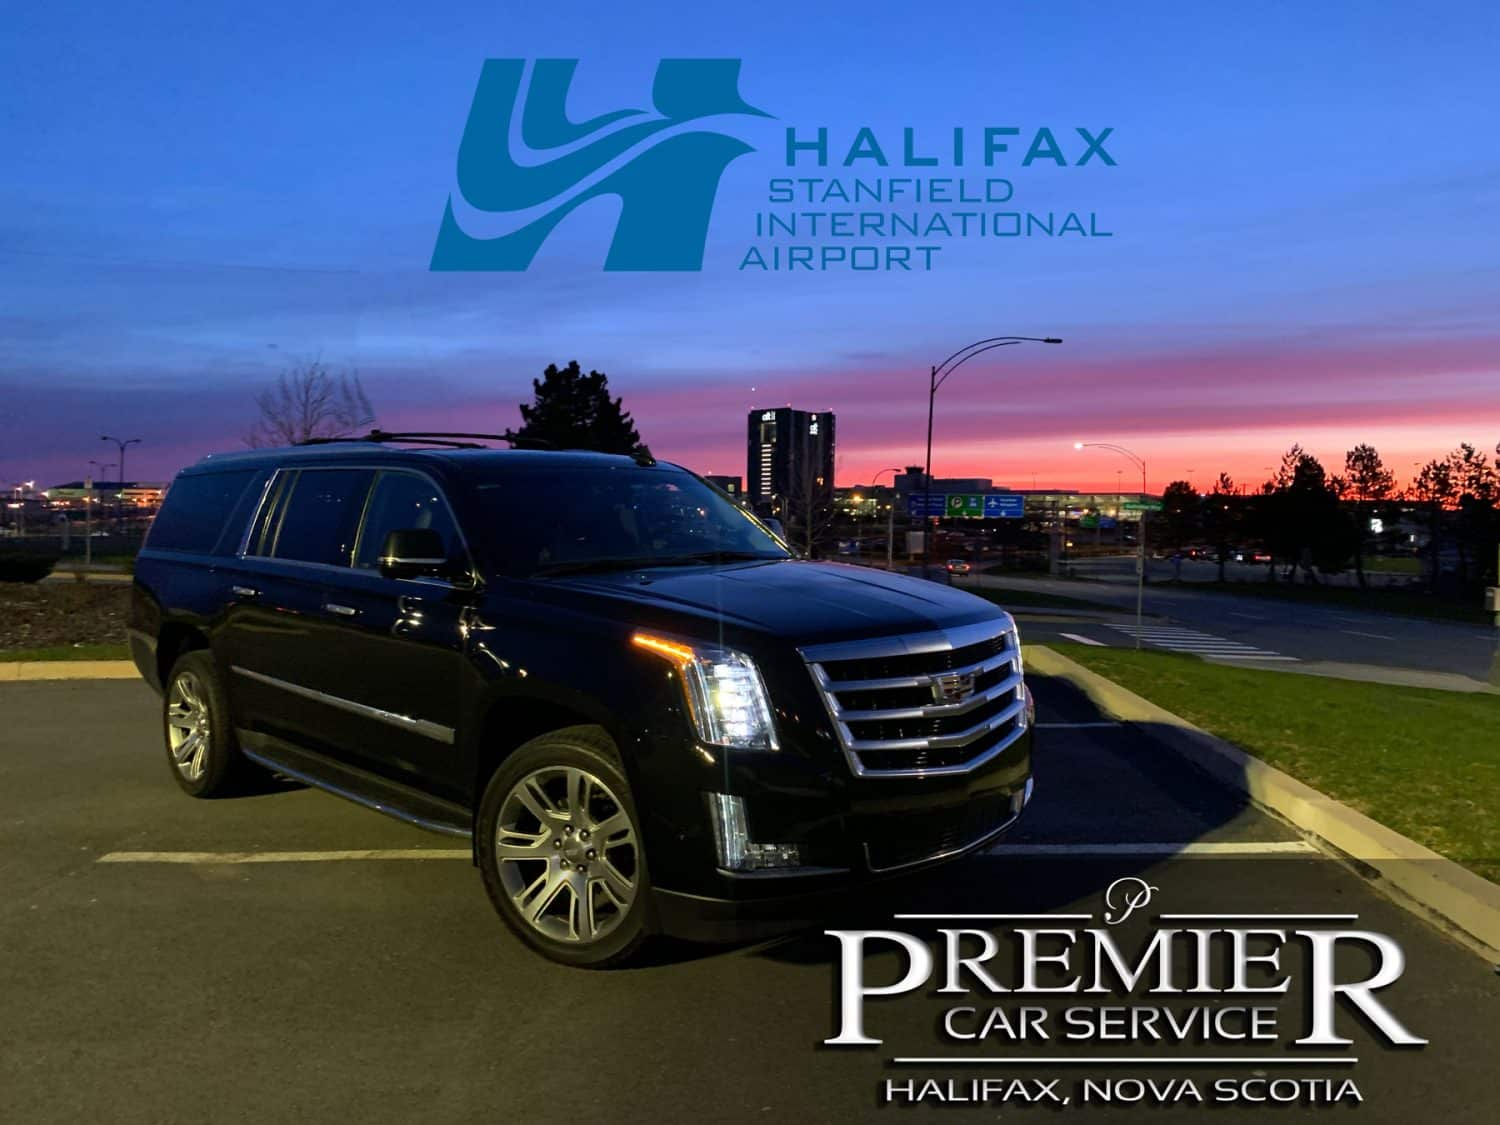 Premier Car Service Cadillac Escalade at Halifax Airport